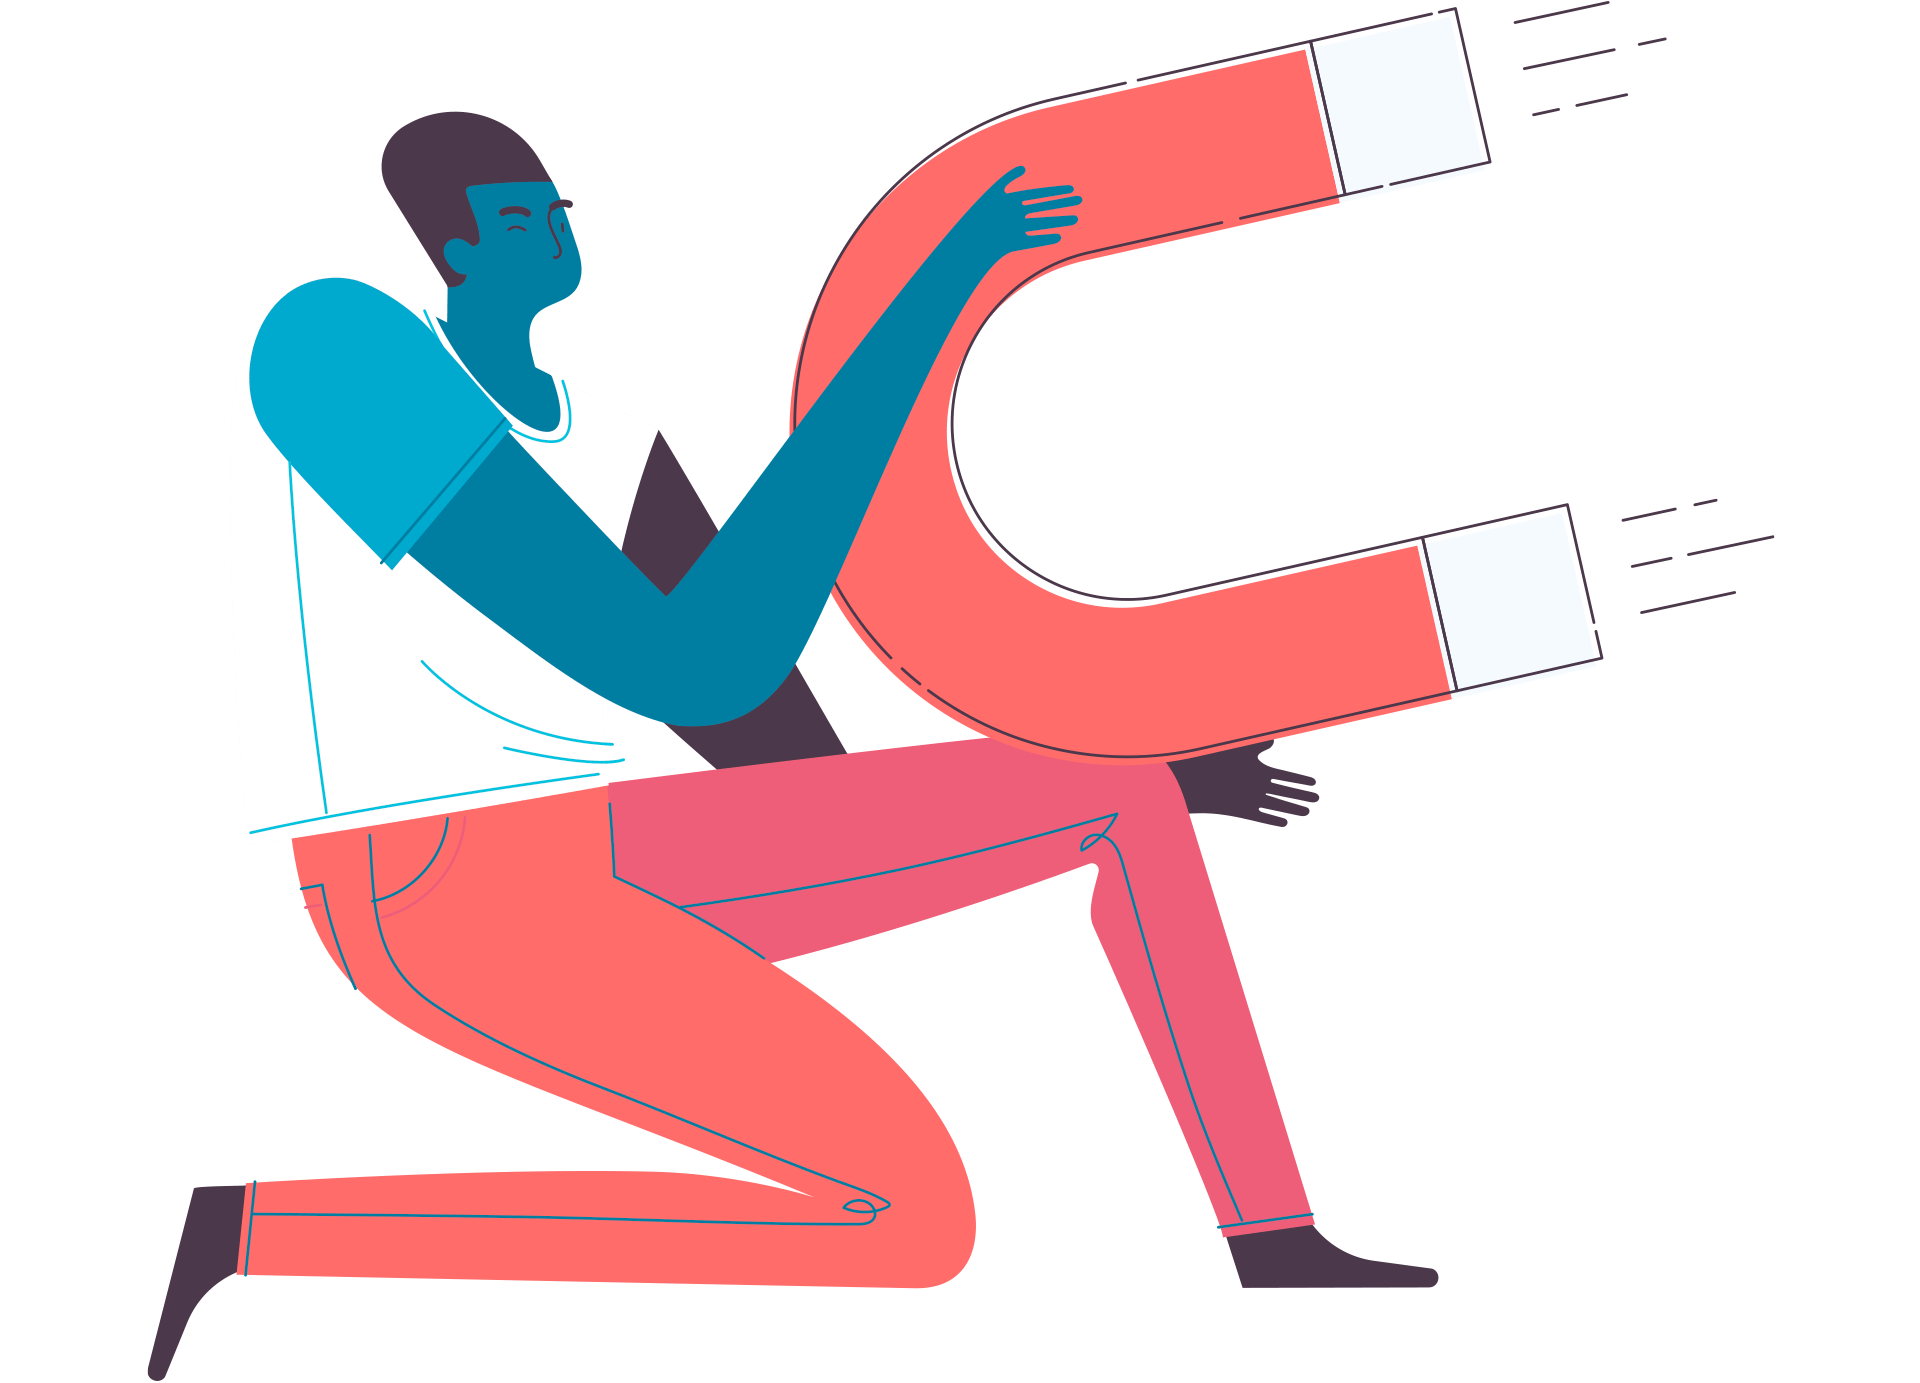 An illustration of a person wielding an over-sized magnet.